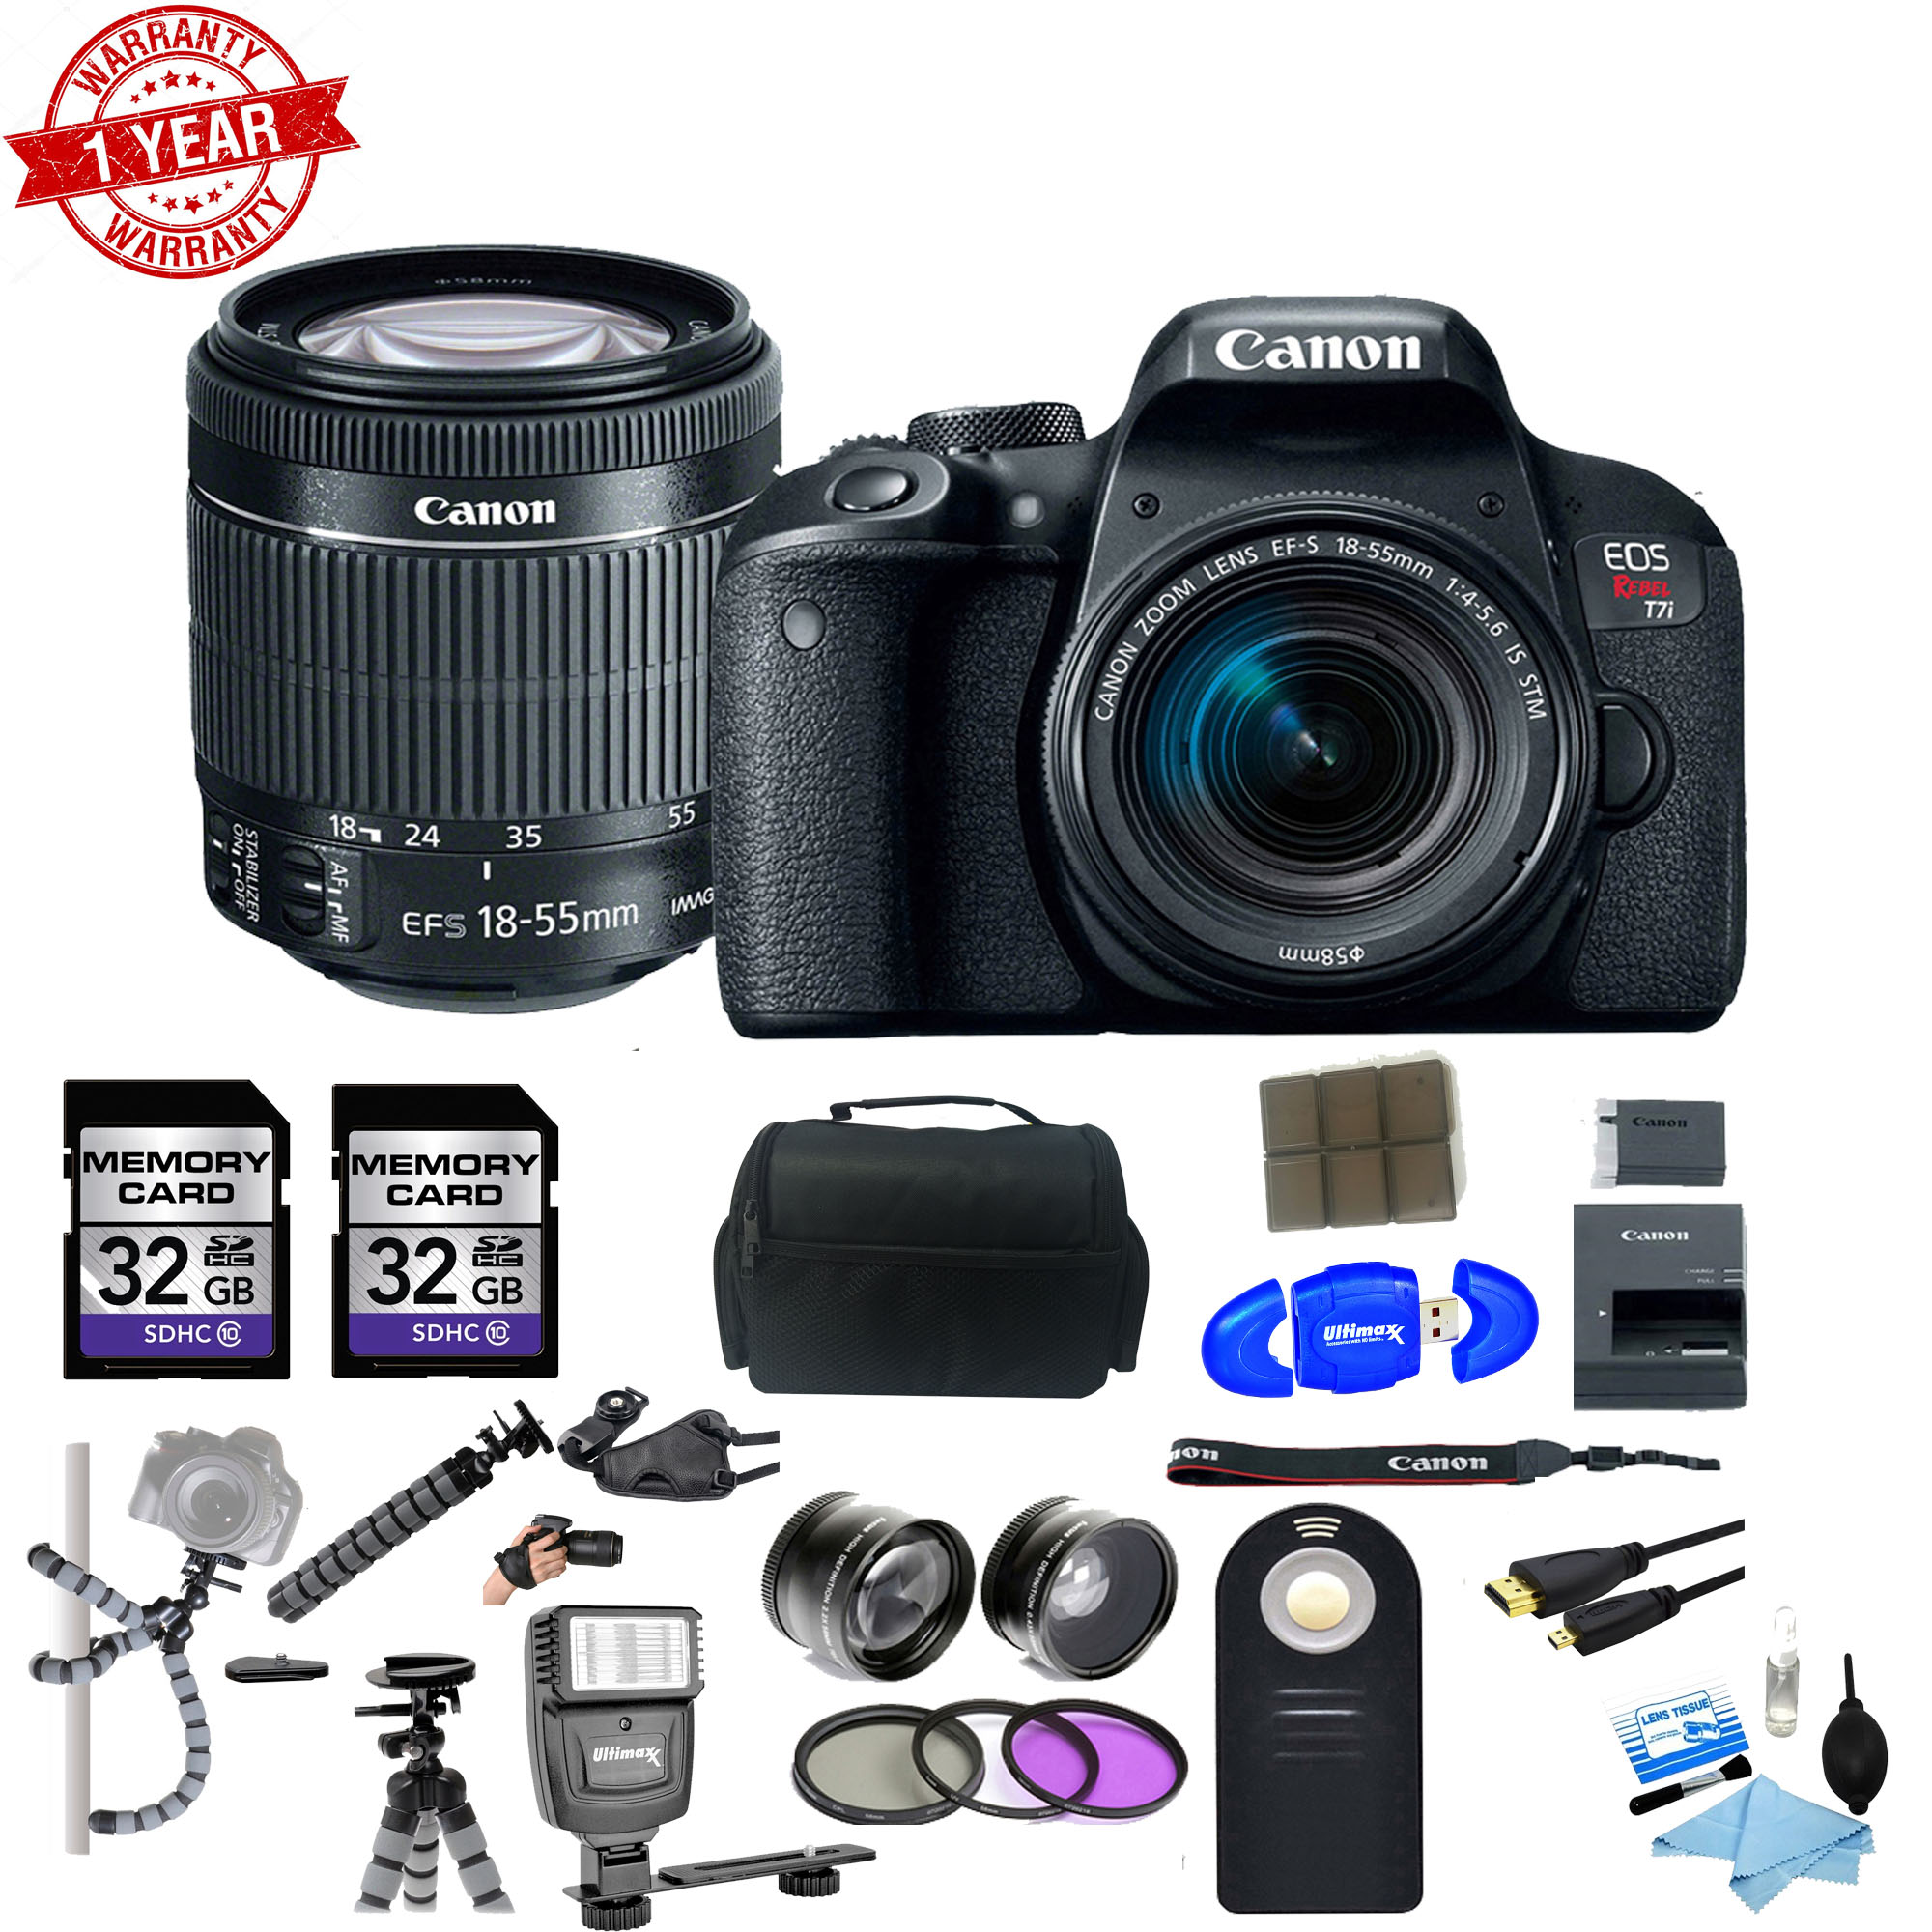 Canon EOS Rebel T7i DSLR Camera w/18-55mm lens & 64GB Deluxe Accessory Bundle - image 1 of 1